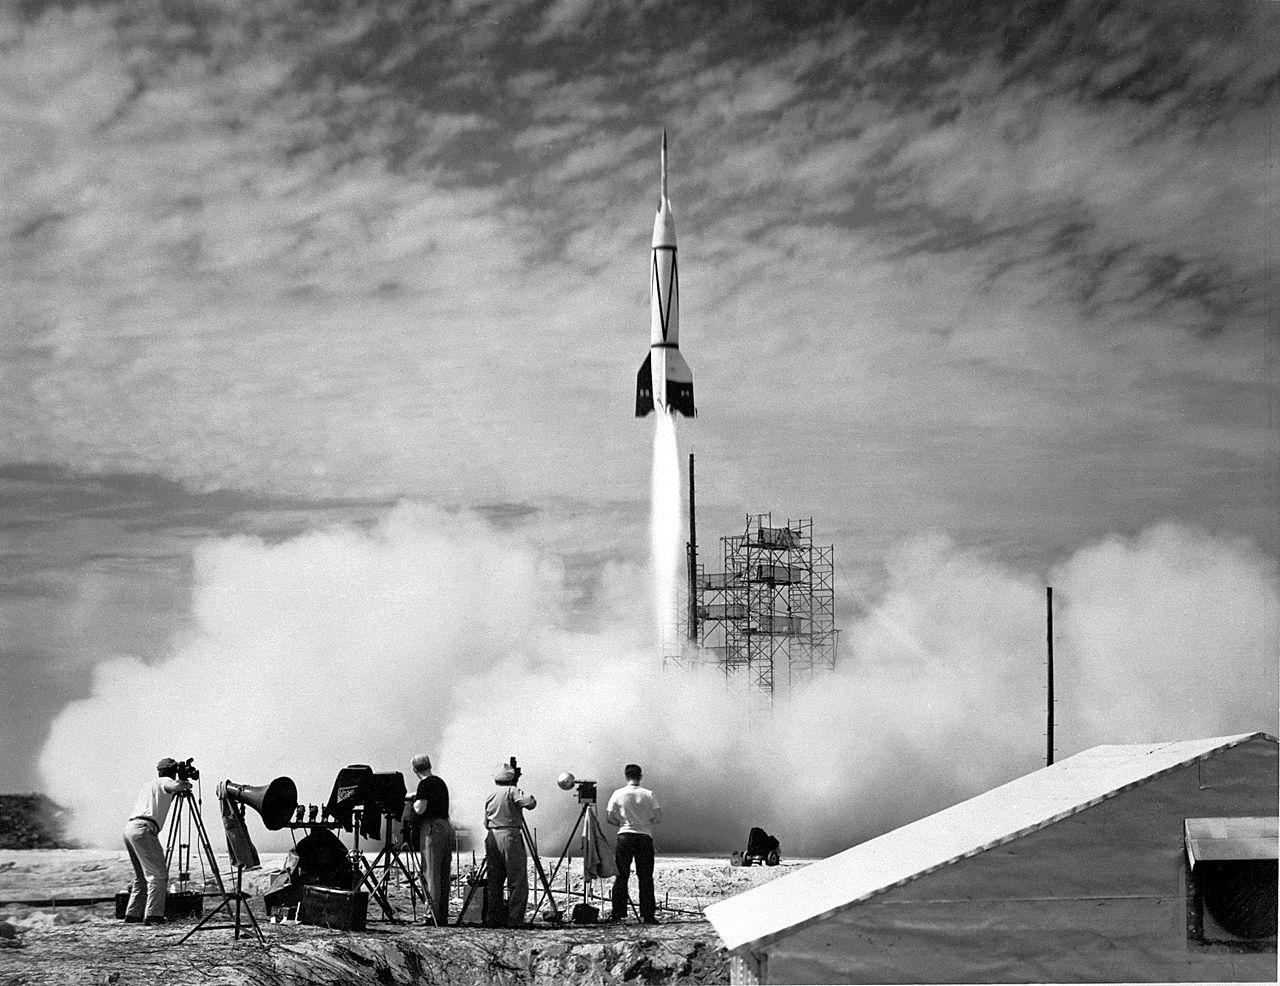 1280x986xBumper-8-launch-at-Pad-3-Cape-Canaveral-Air-Force-Station-Florida-24-July-1950.jpg.pagespeed.ic.Q8zBjYznim